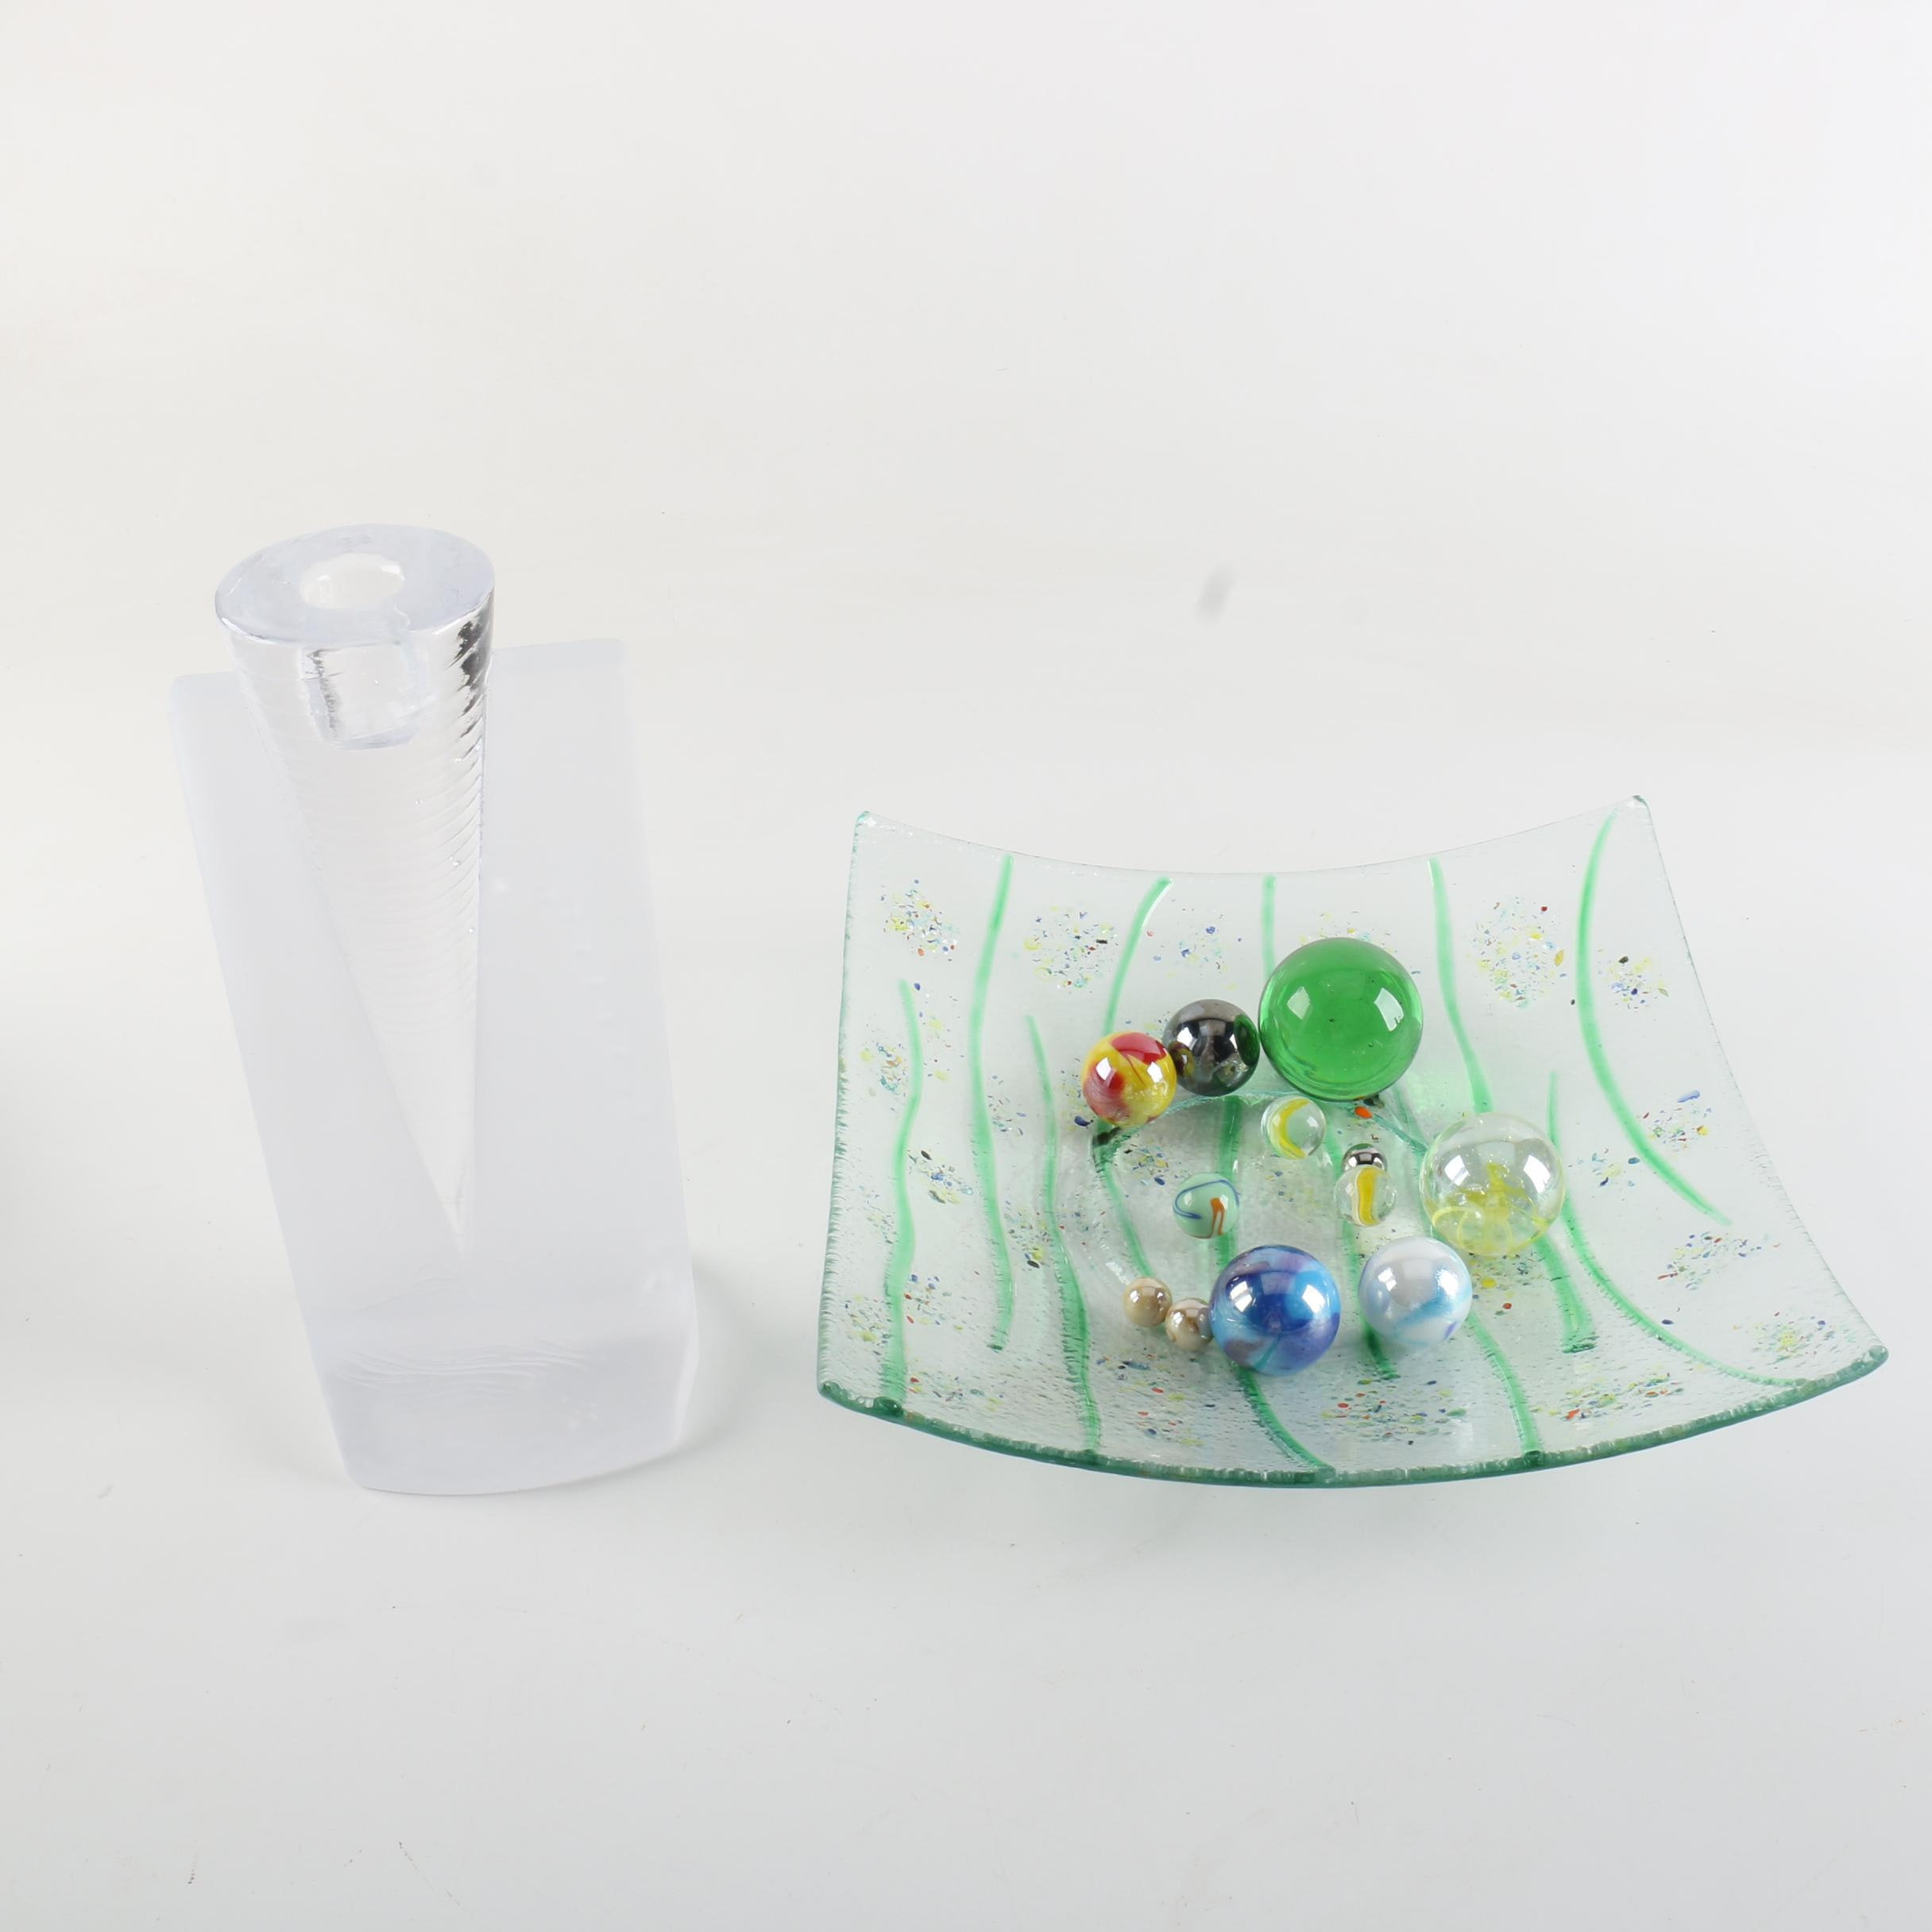 Geometrical Glass Candlestick, Dish, and Marbles